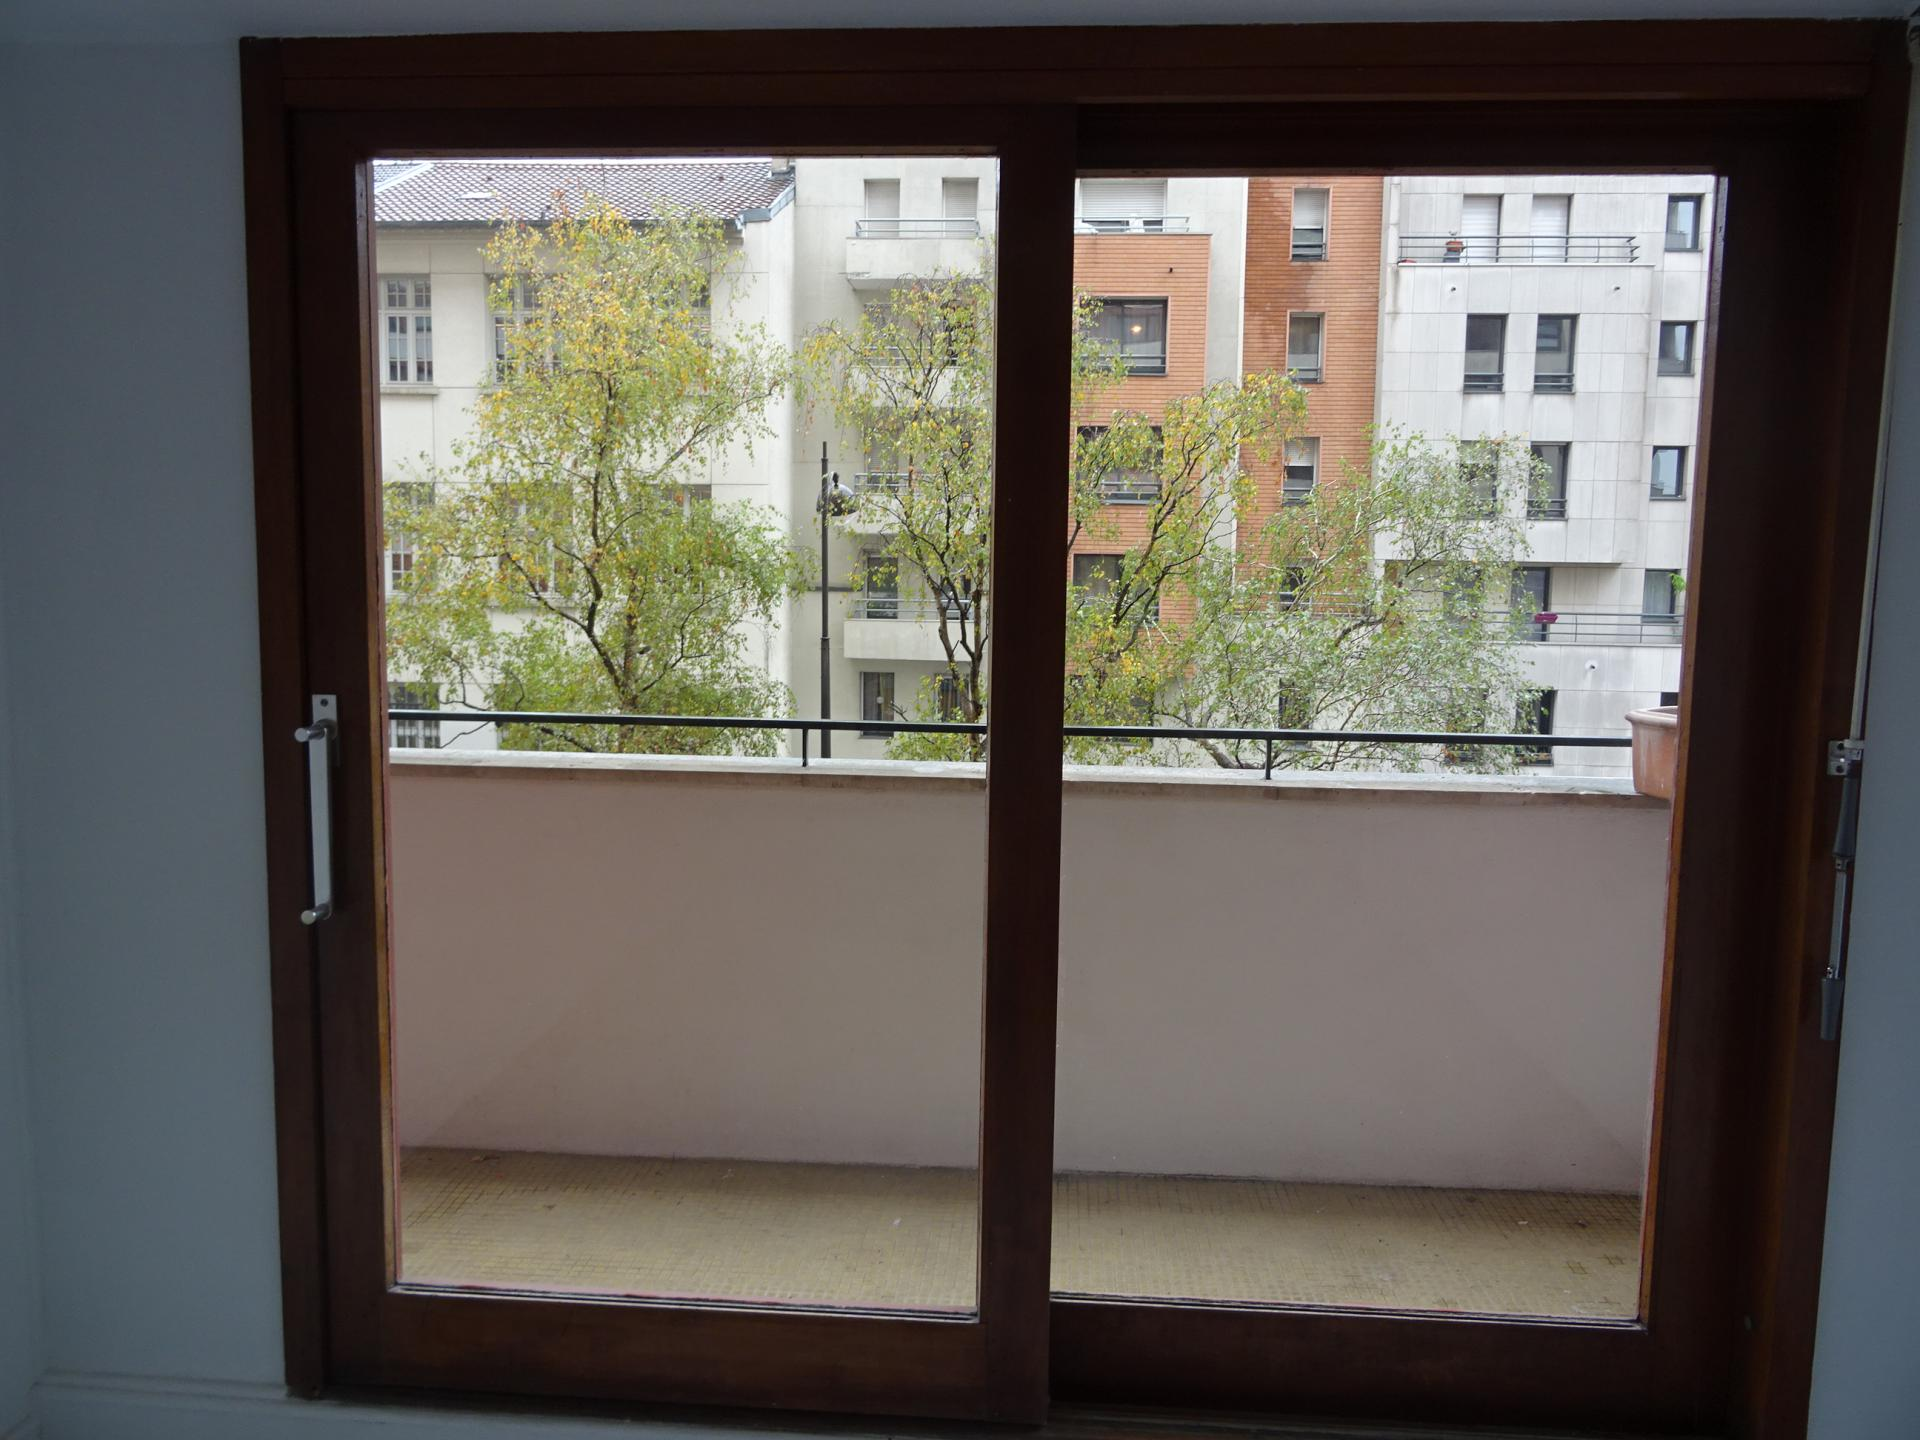 Appartement de 122 m2 hauts de Pelleport Paris 20e